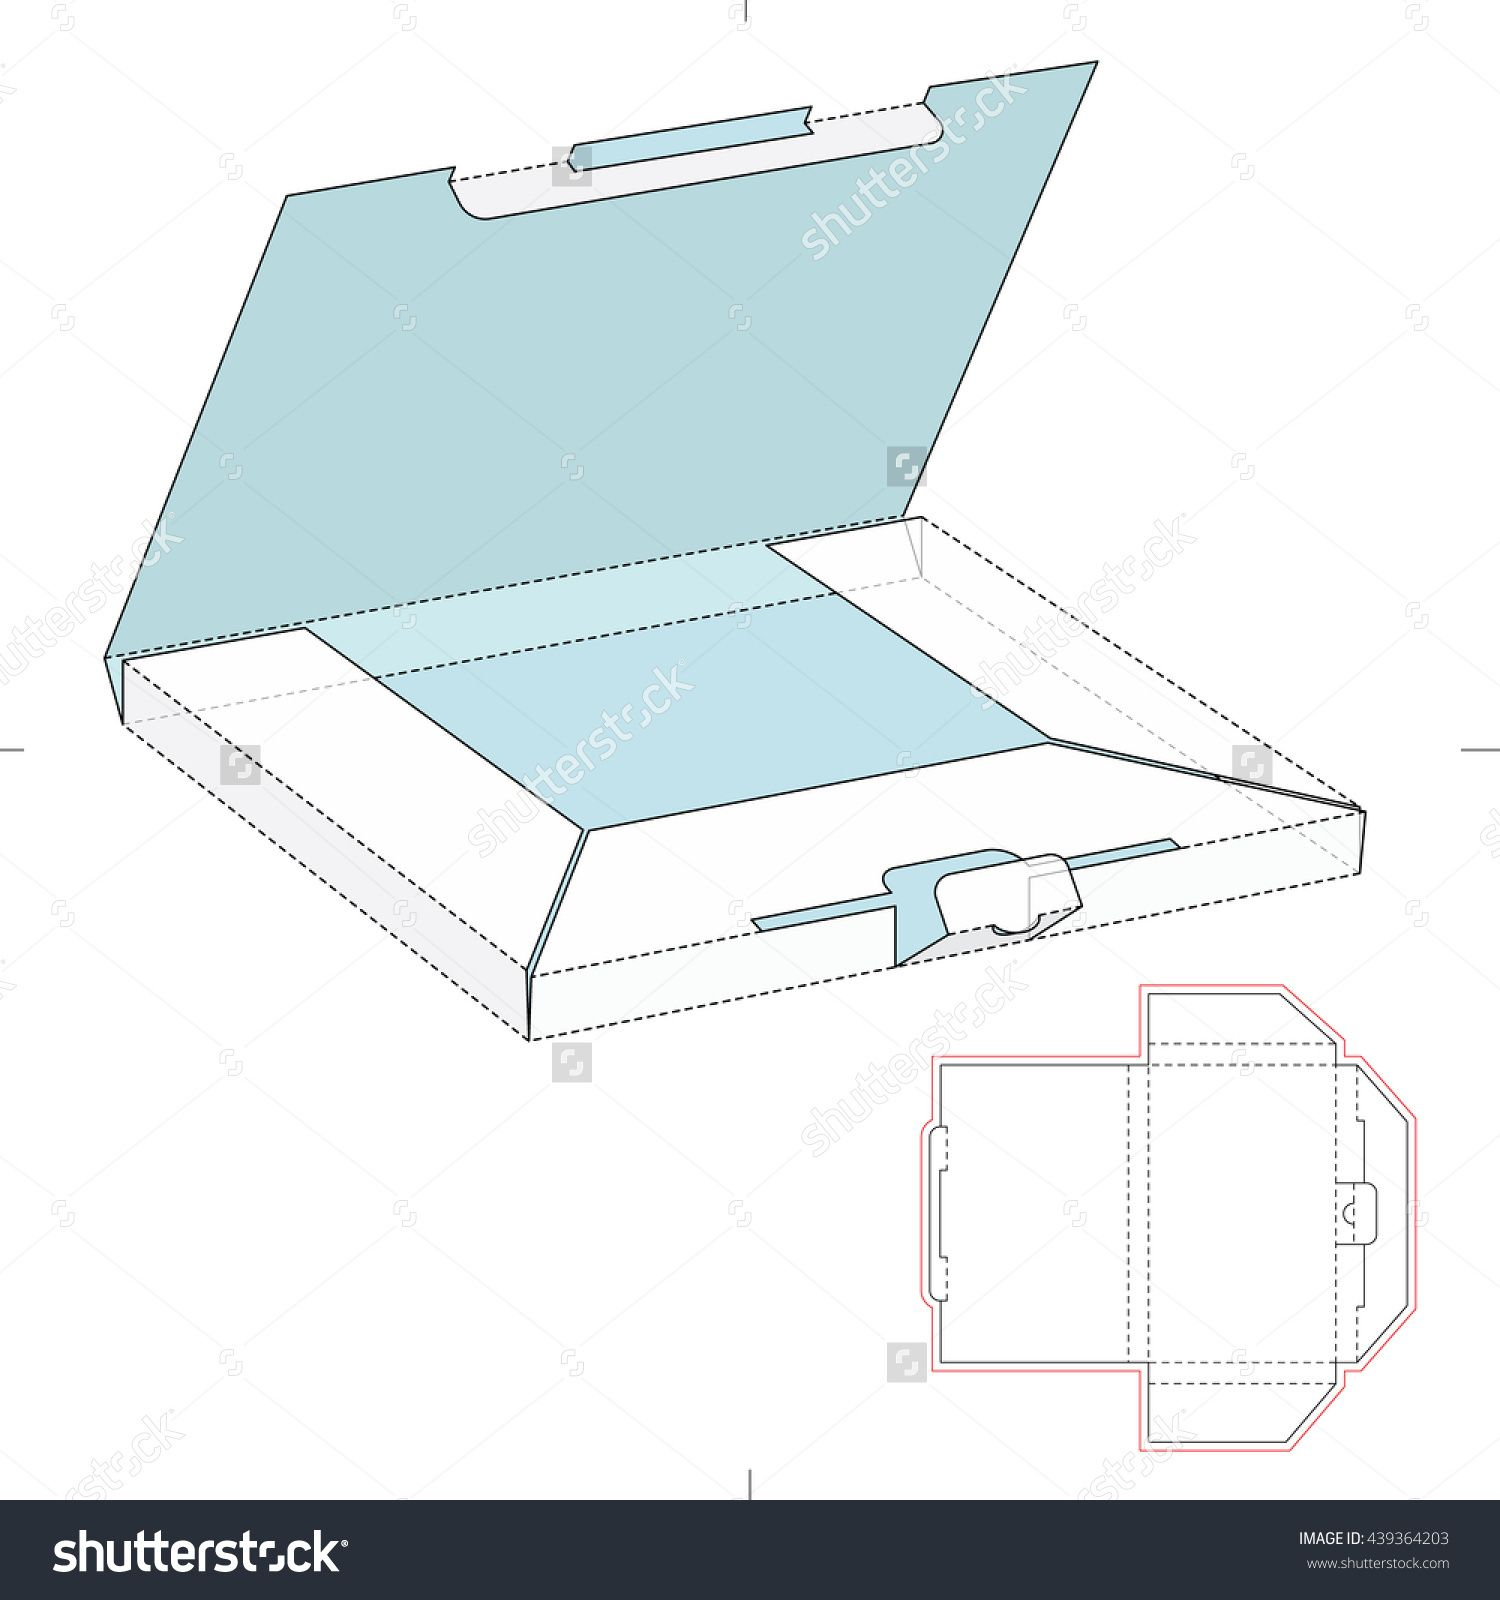 Mailer Box With Blueprint Template Stock Vector Illustration 439364203 : Shutterstock